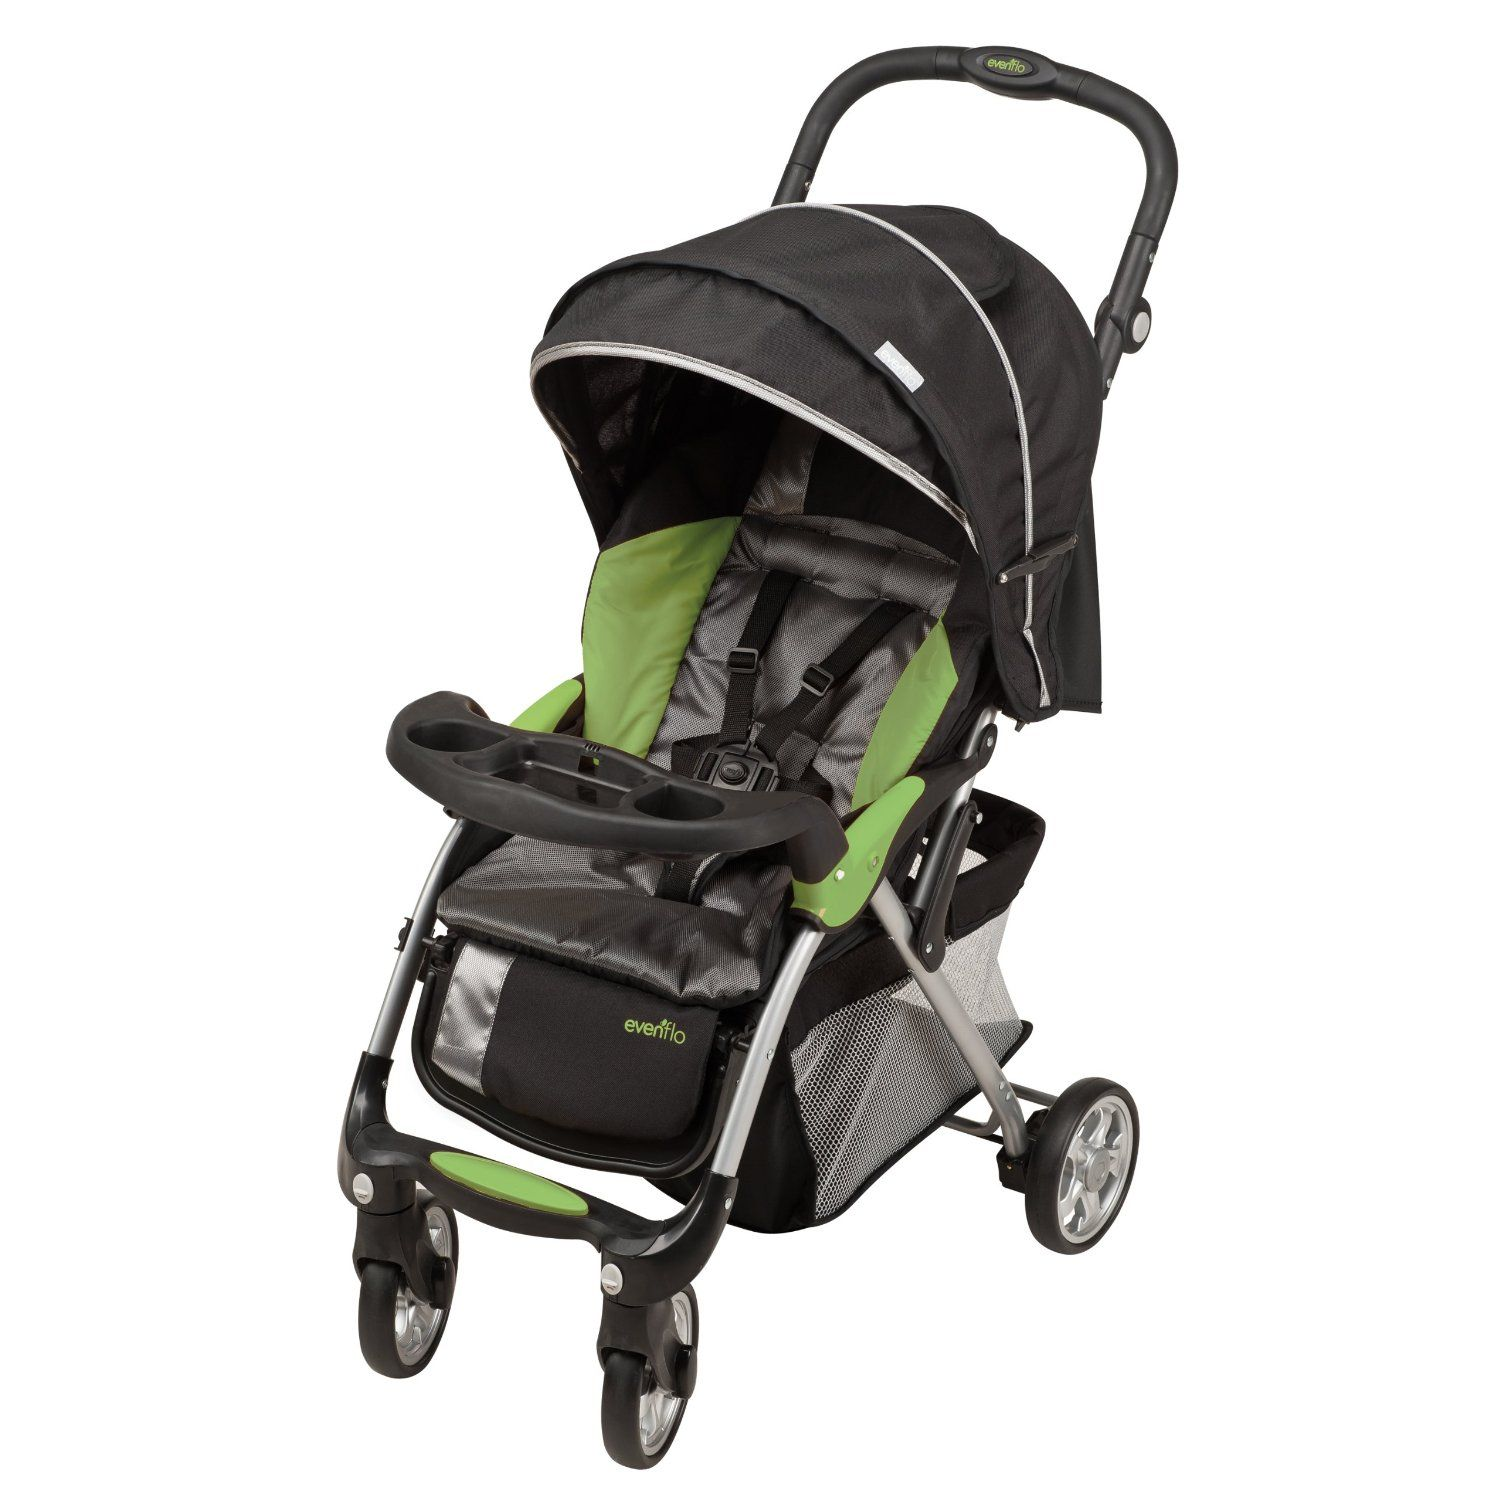 Evenflo FeatherLite 400 Stroller with Embrace